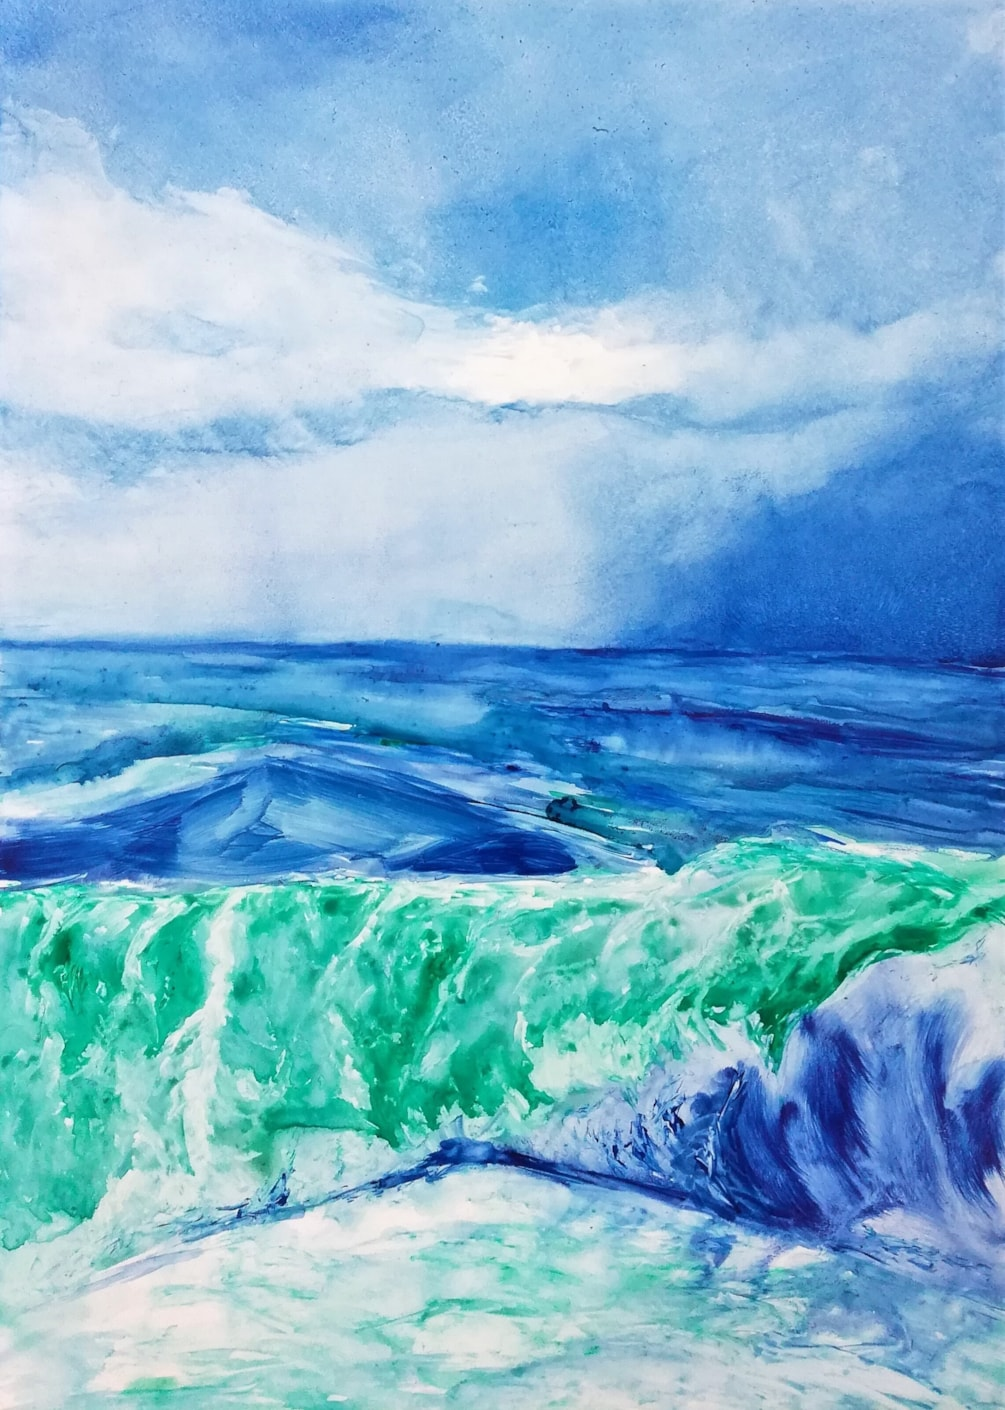 Sea and Waves